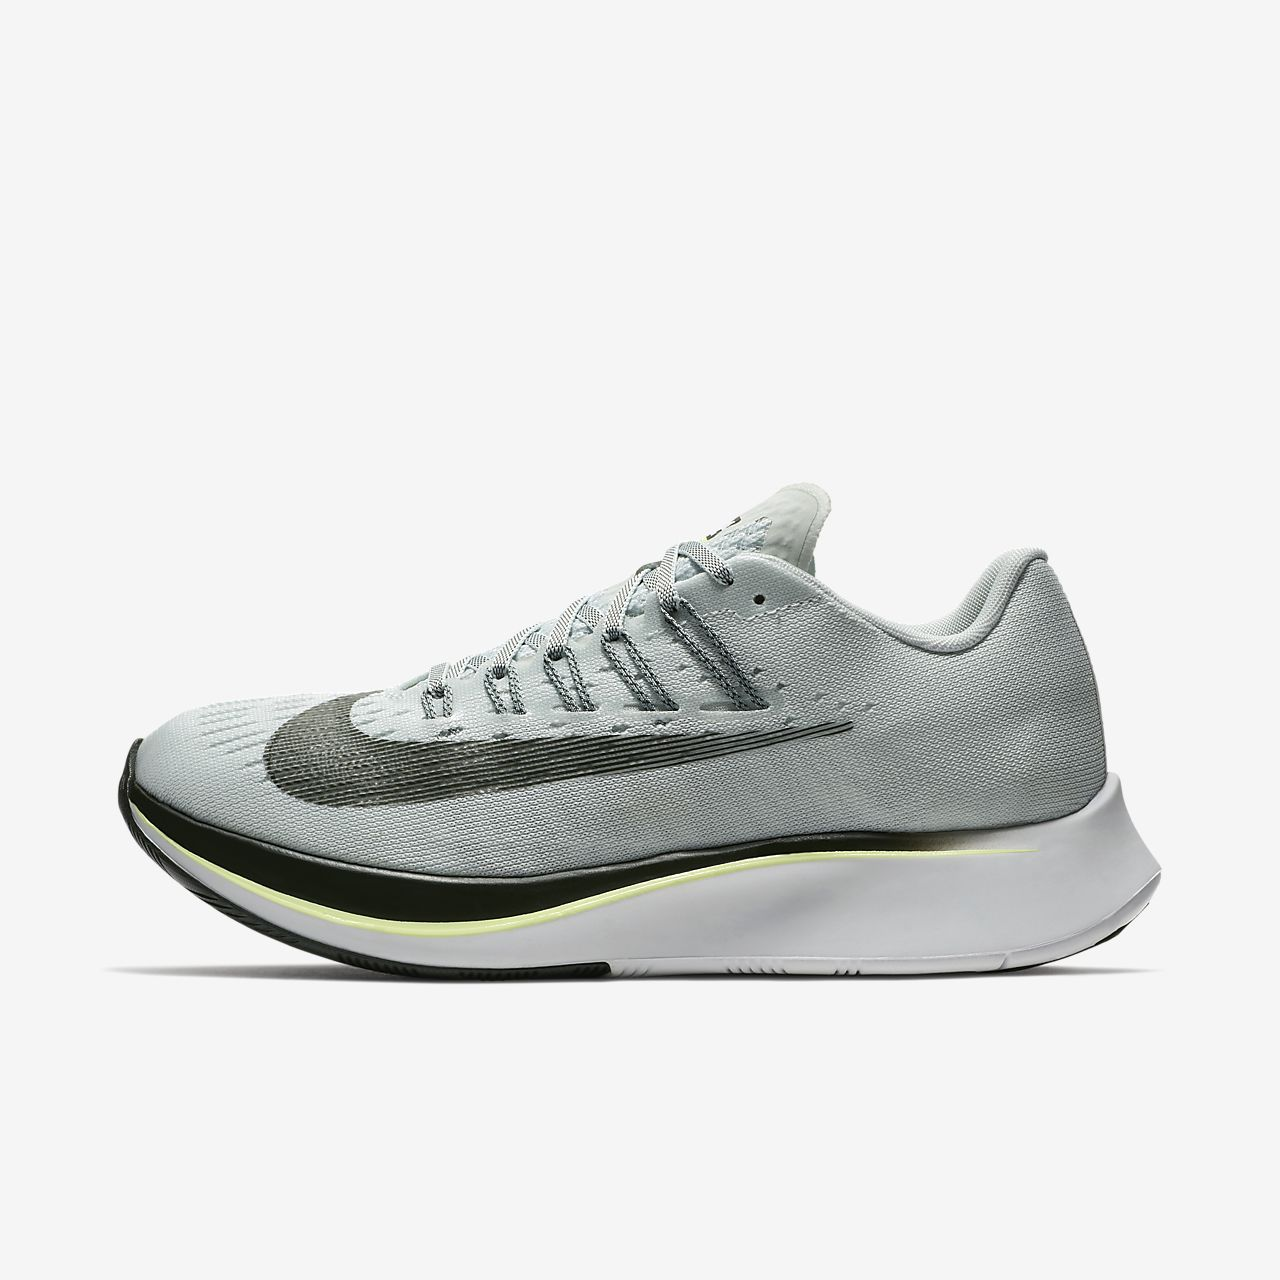 nike pegasus 28 mens 10.5 nz